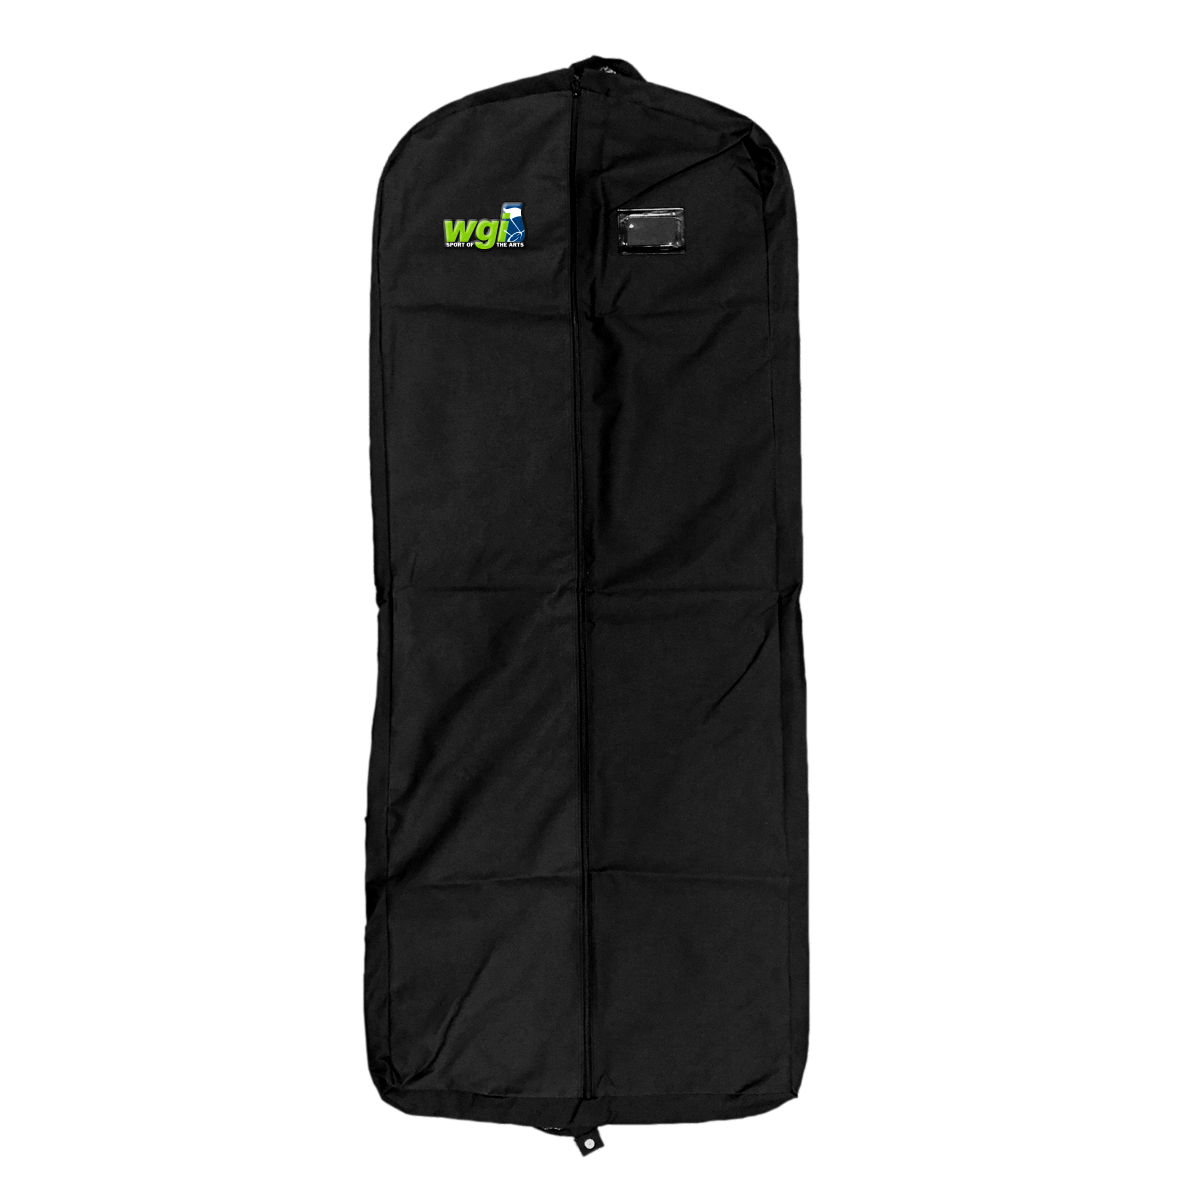 WGI Logo Garment Bag